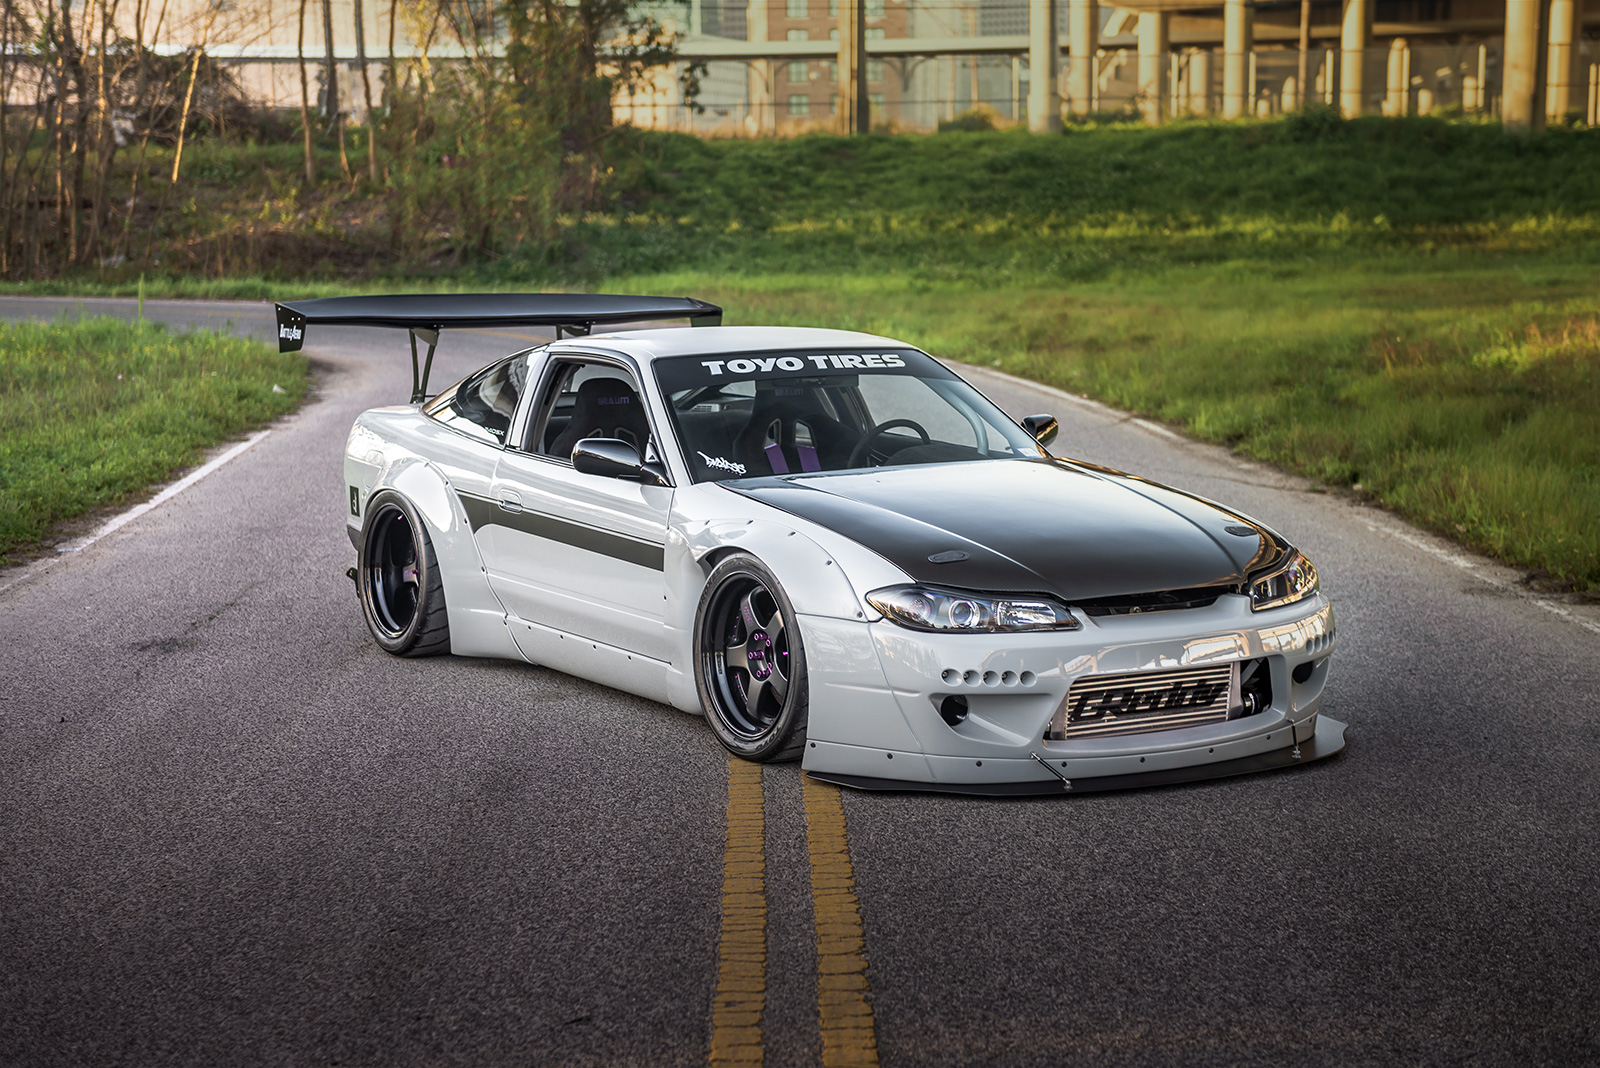 S13 5 V2 Anthony Do S 1993 Nissan 240sx Pasmag Is The Tuner S Source For Modified Car Culture Since 1999